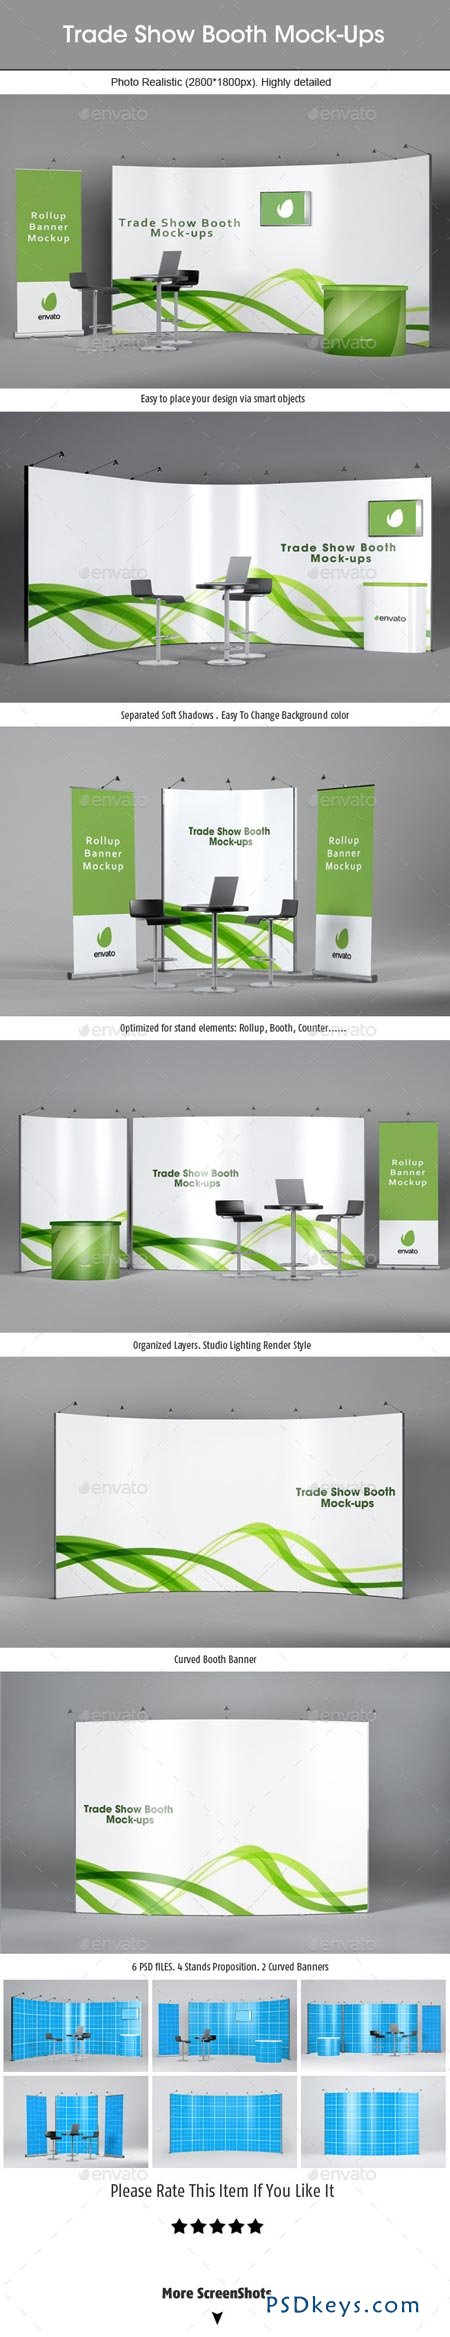 Exhibition Booth Mockup Free Download : Trade show booth mockups v free download photoshop